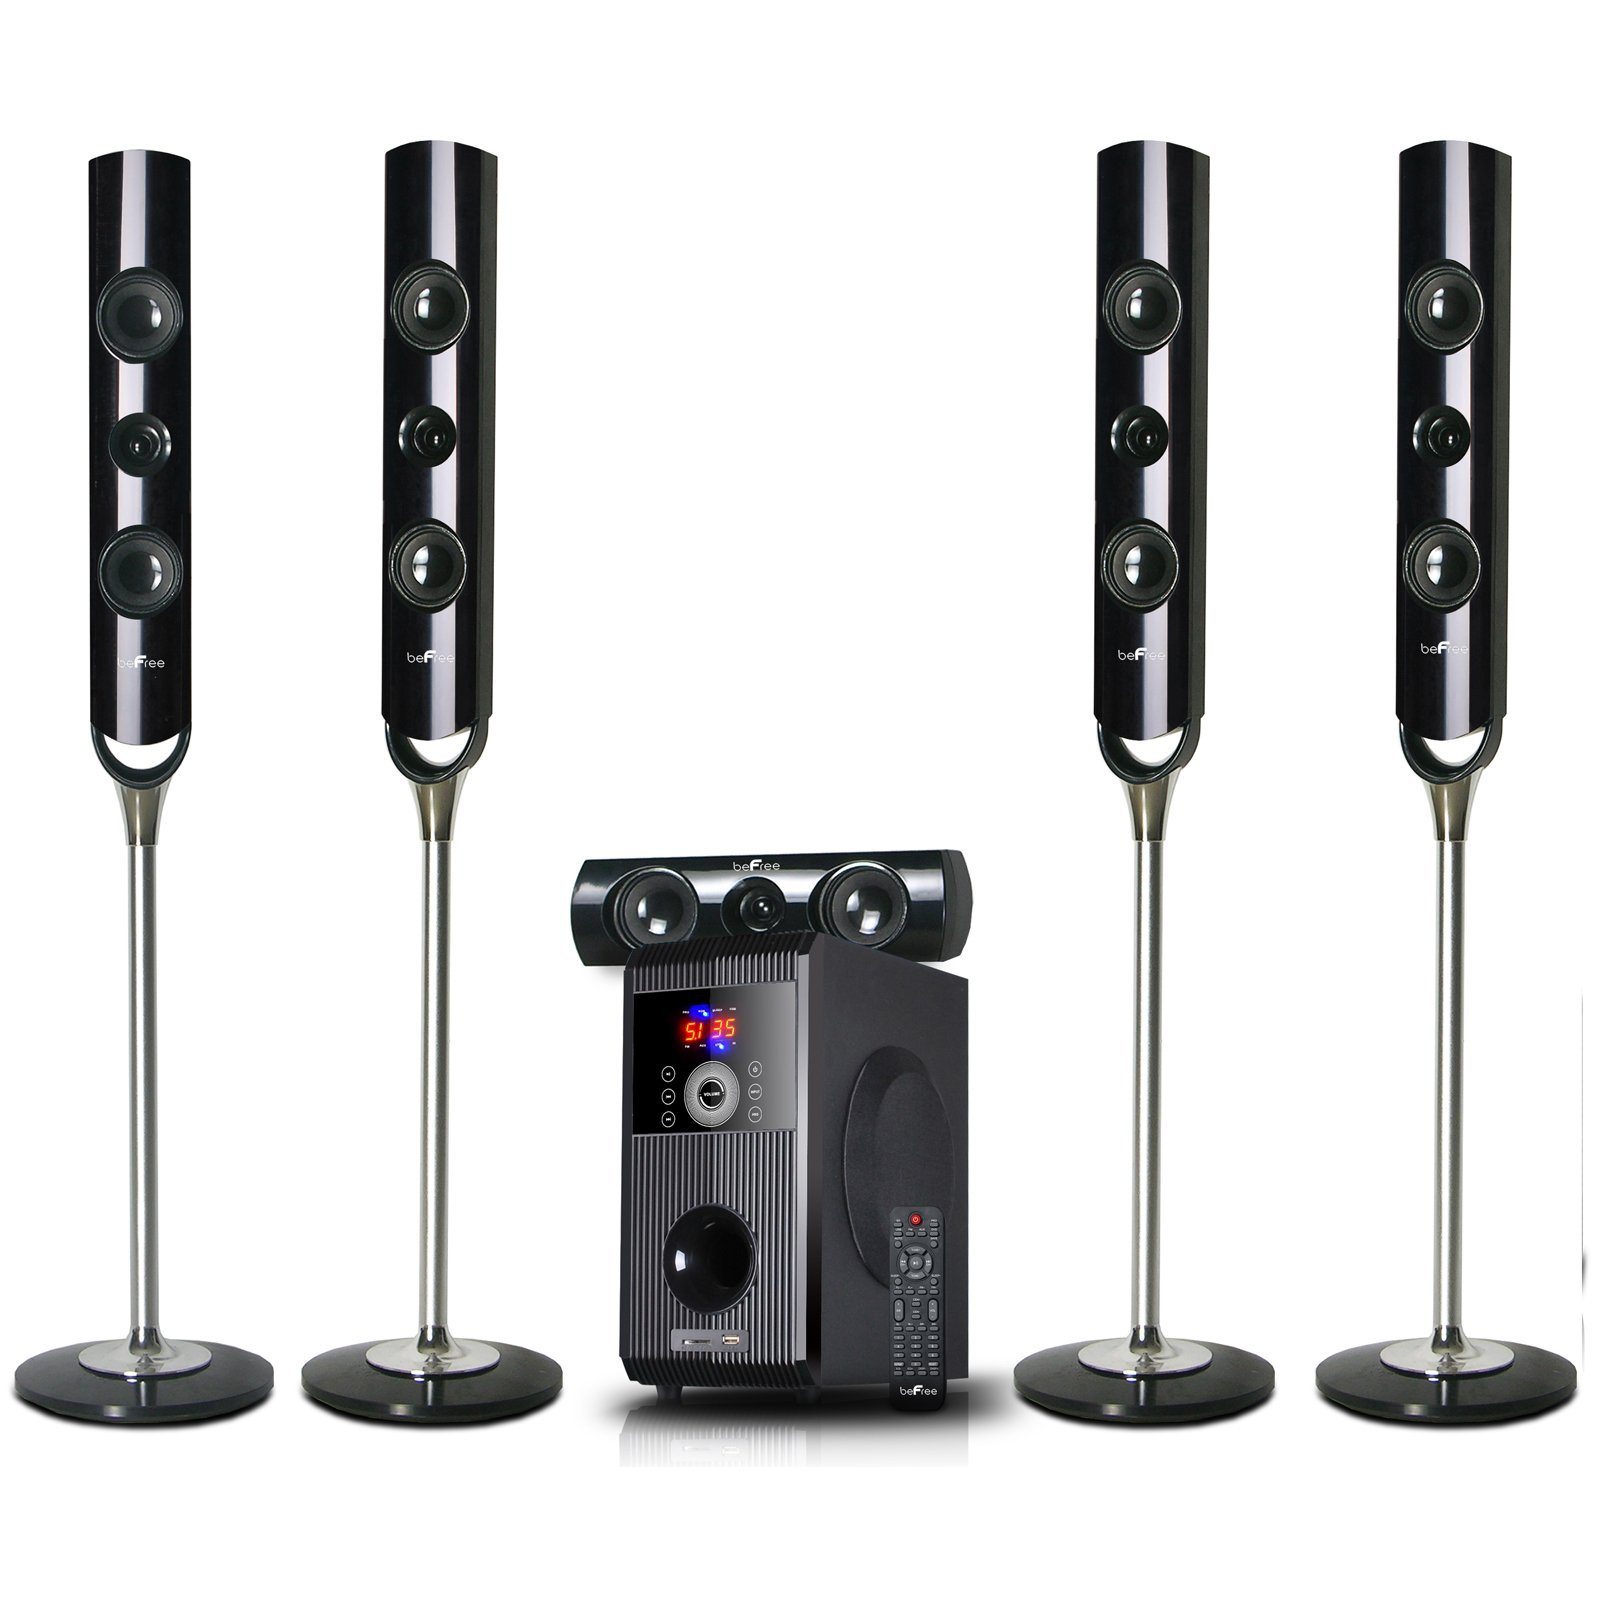 beFree Sound BFS-900 5.1 Channel Surround Sound Bluetooth Speaker System by BEFREE SOUND